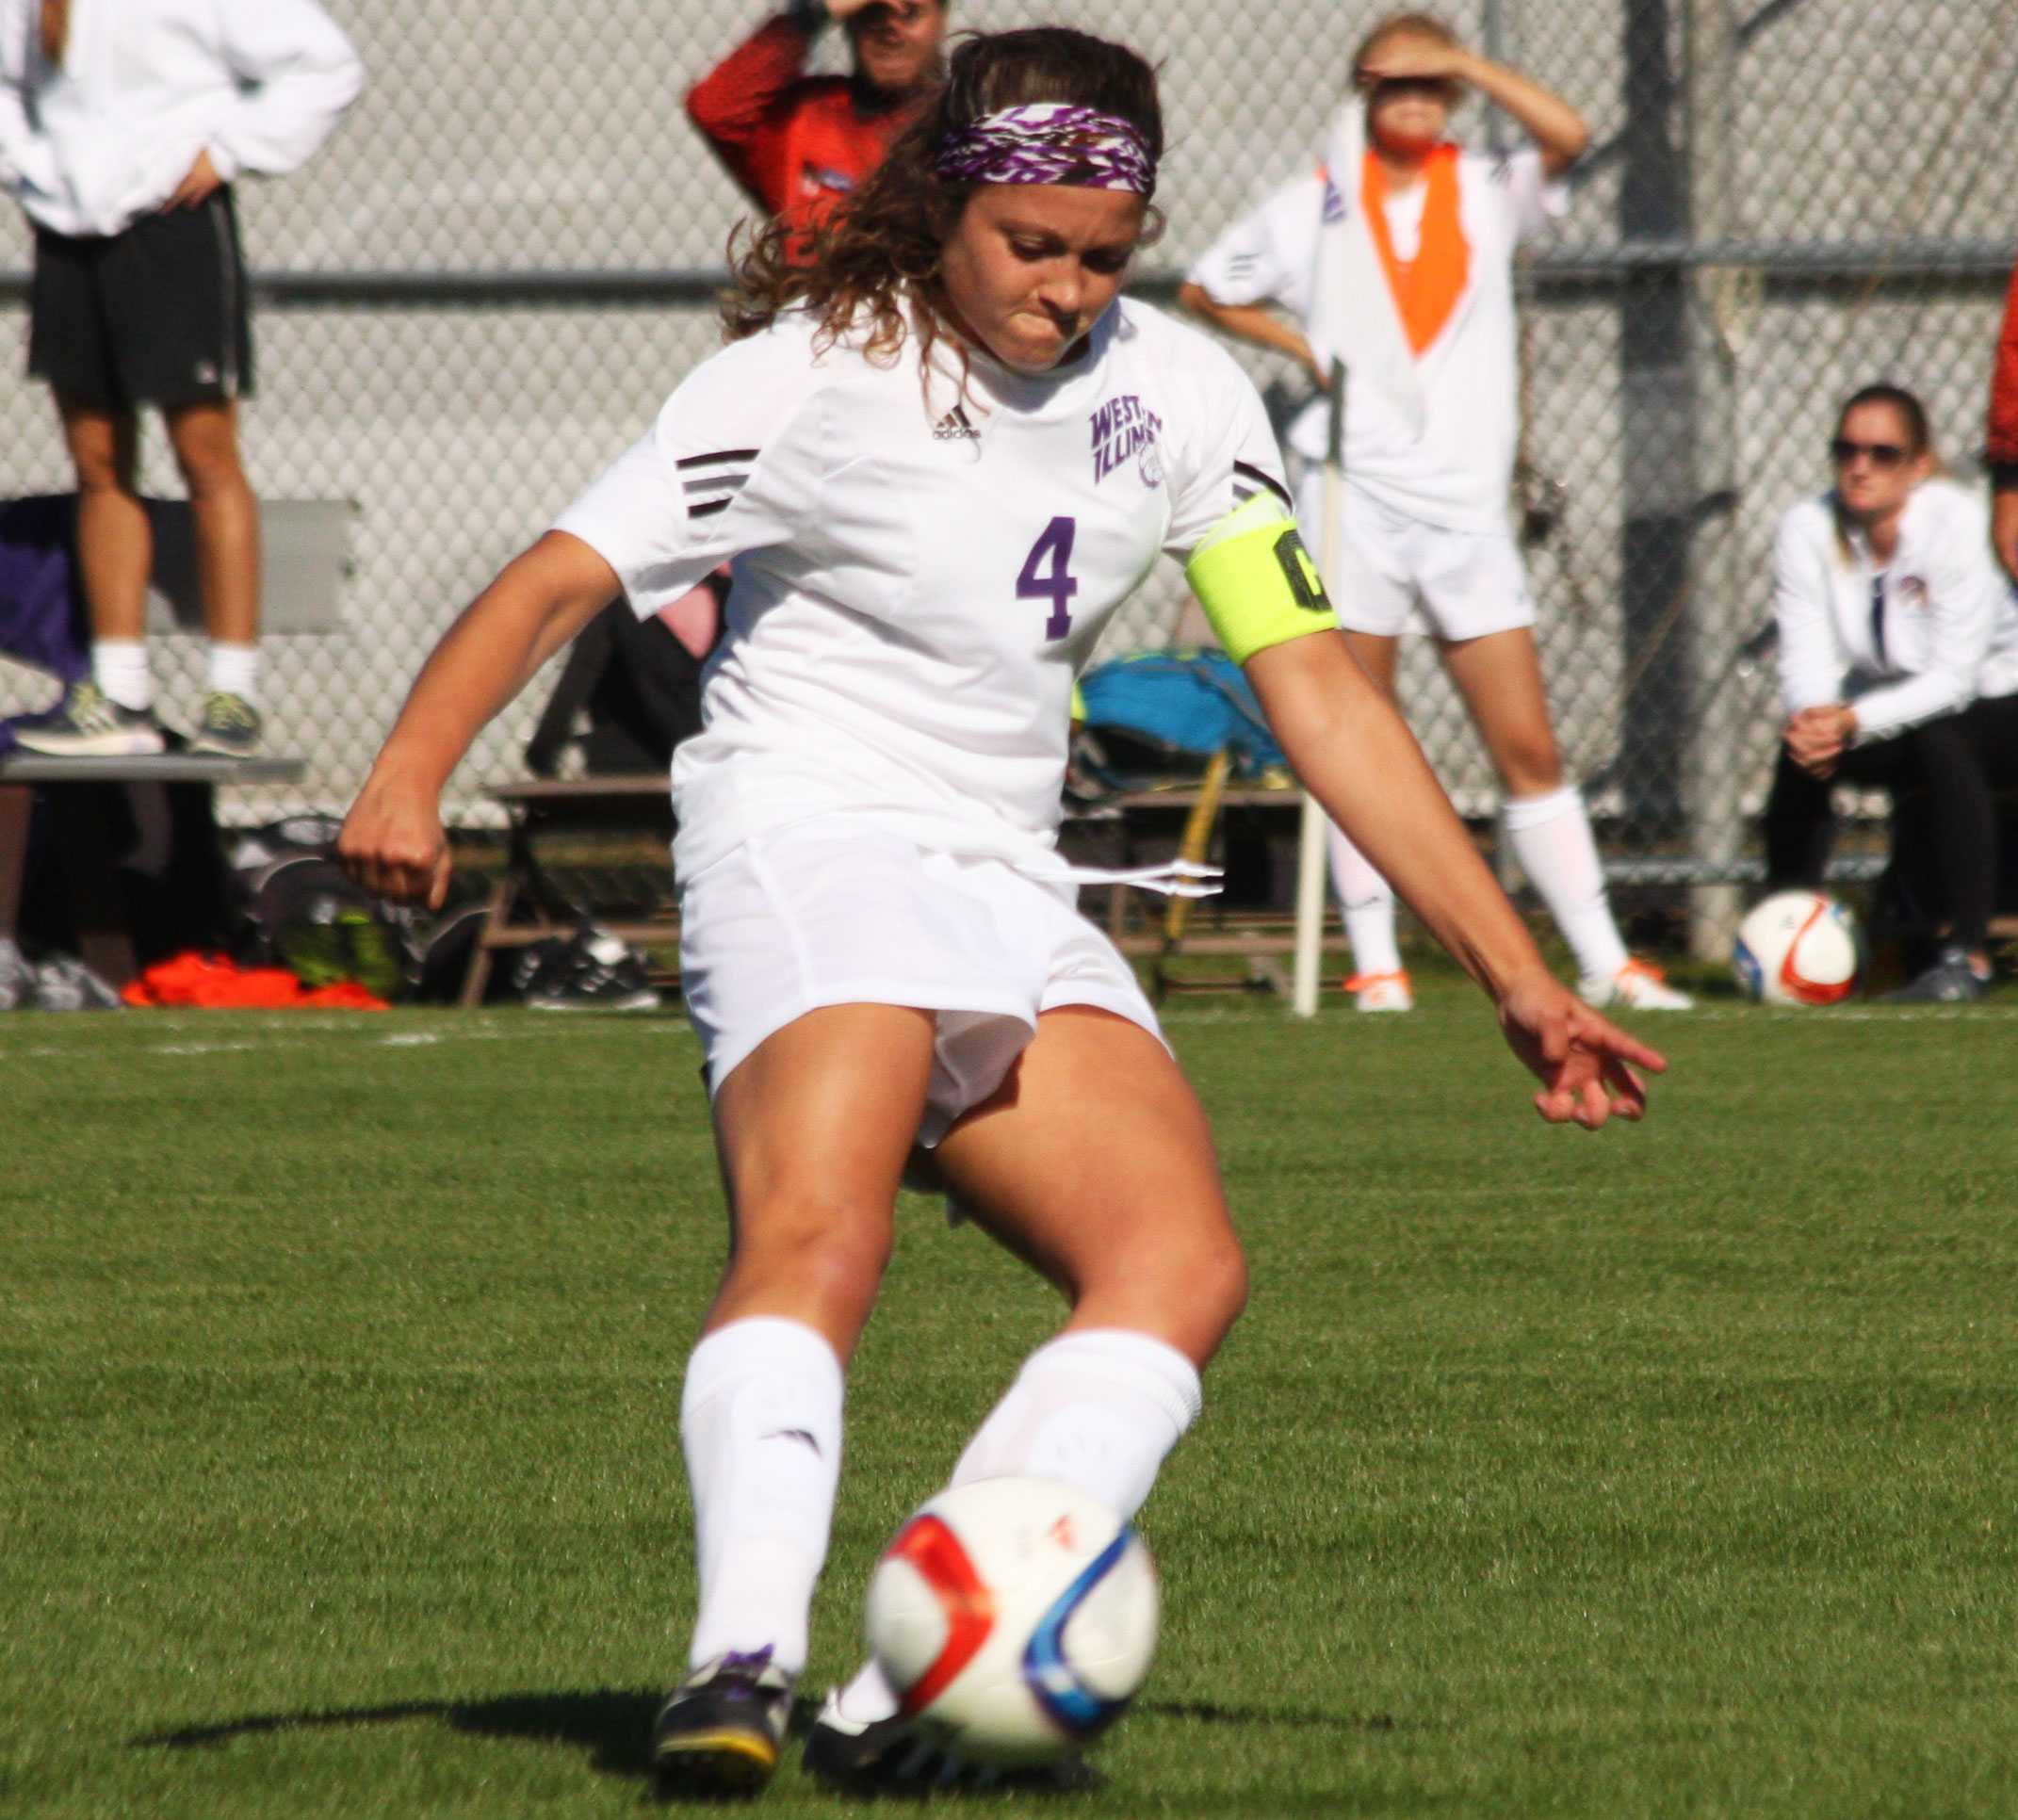 Gina Scaffidi scores a goal for the Leathernecks against South Dakota, beating keeper Sydney Hardin.